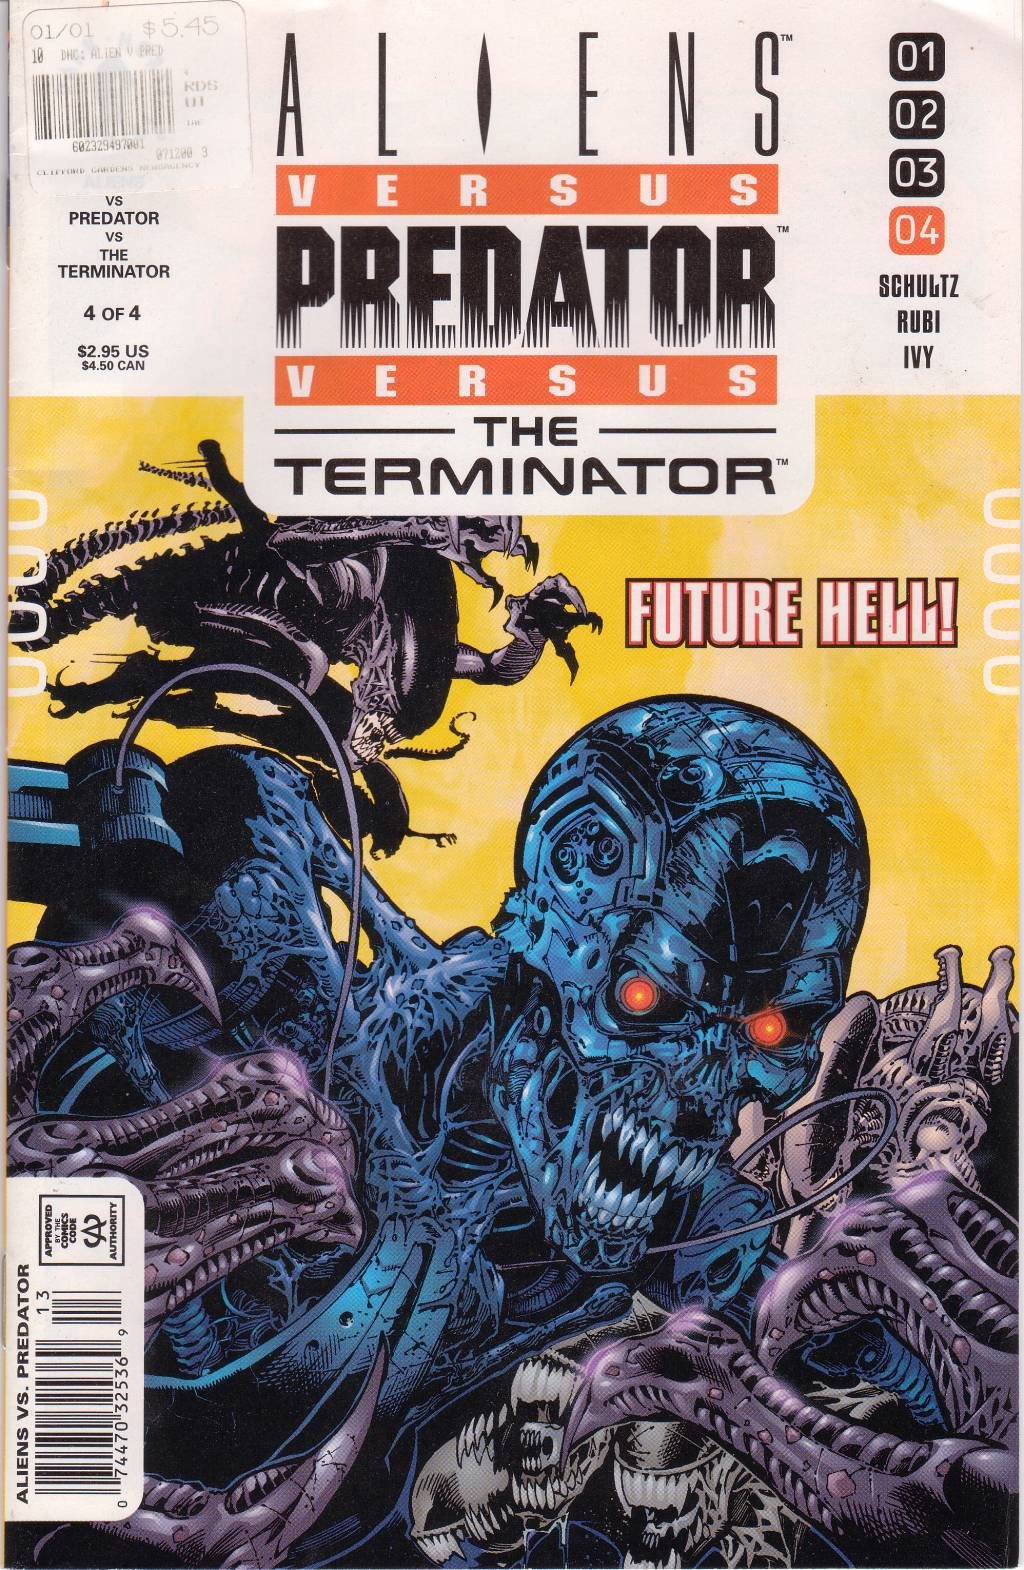 Read online Aliens vs. Predator vs. The Terminator comic -  Issue #4 - 1